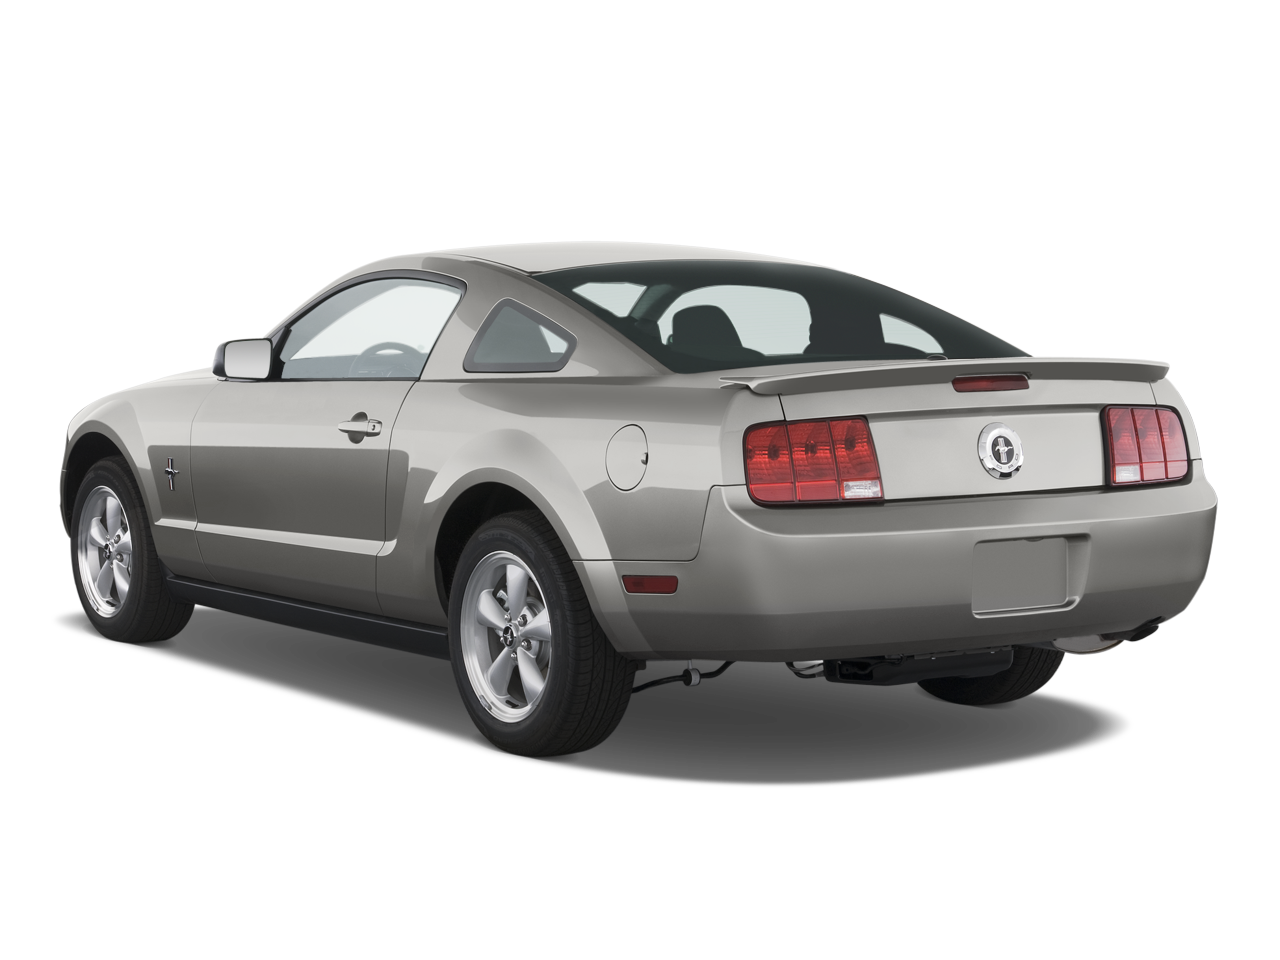 2009 ford mustang gt coupe premium ford sport coupe. Black Bedroom Furniture Sets. Home Design Ideas